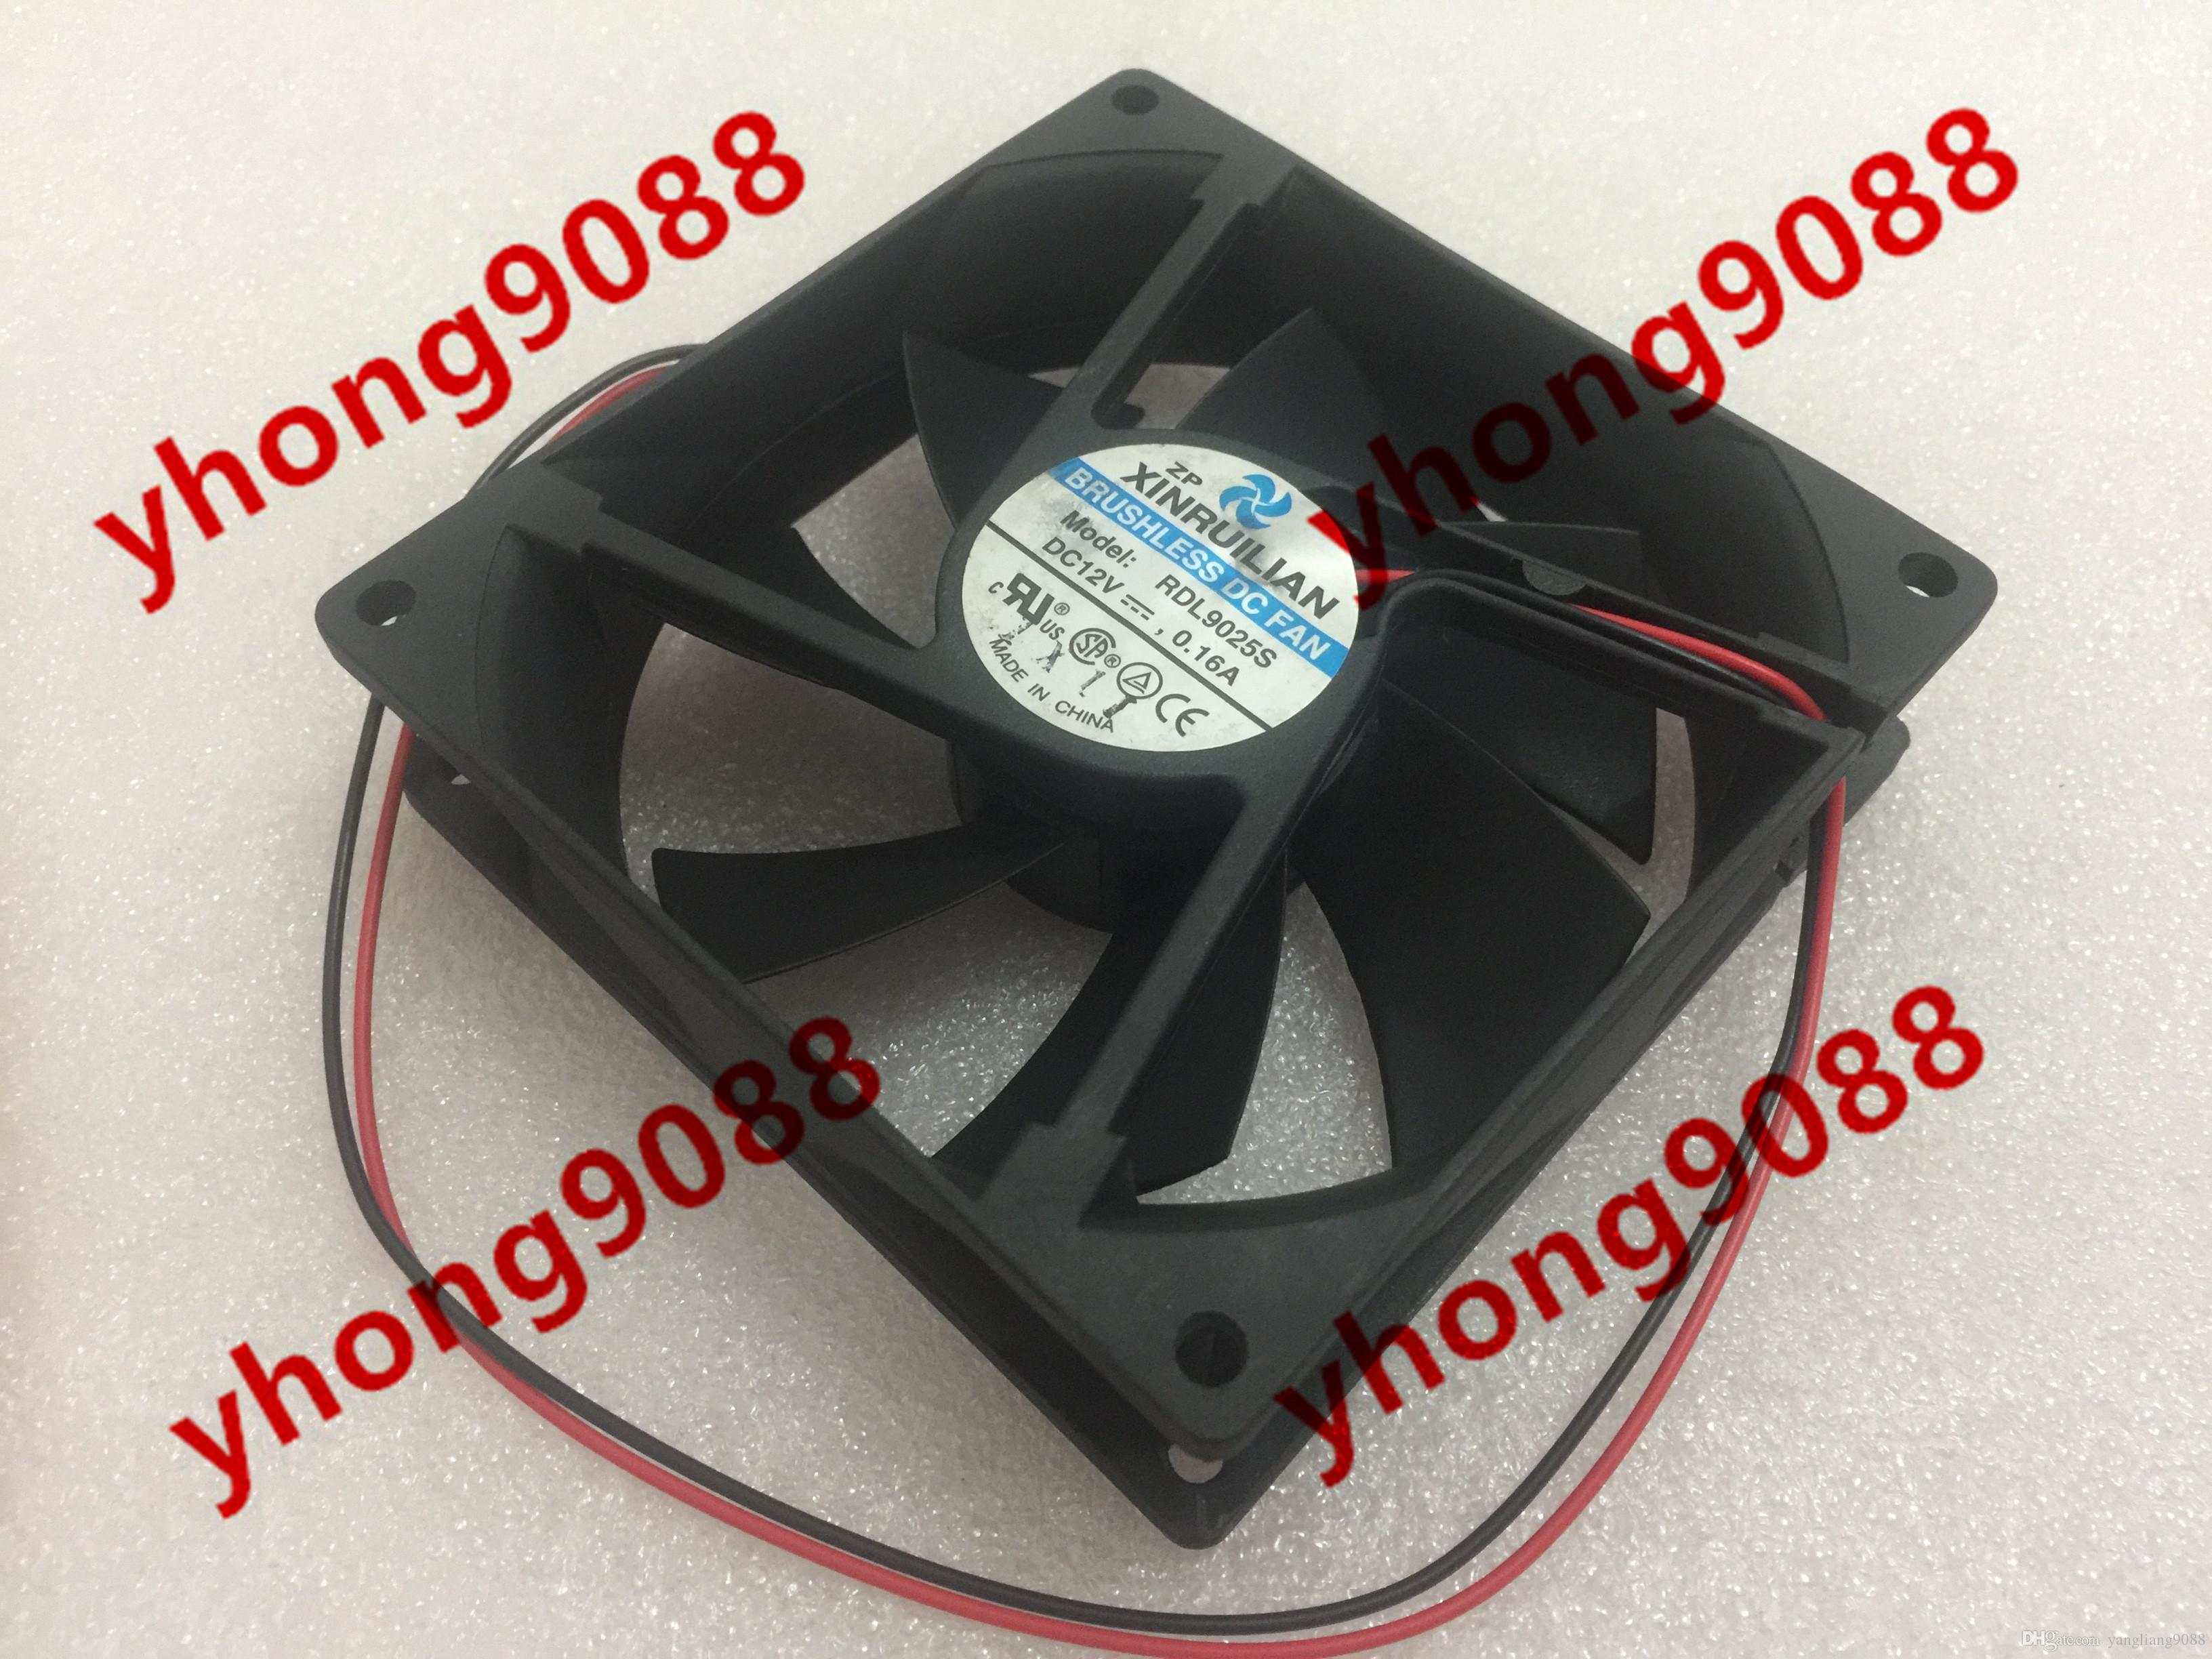 XINRUILIAN RDL9025S DC 12V 0.16A 2-wire 2-pin connector 90x90x25mm Server Cooling Square fan